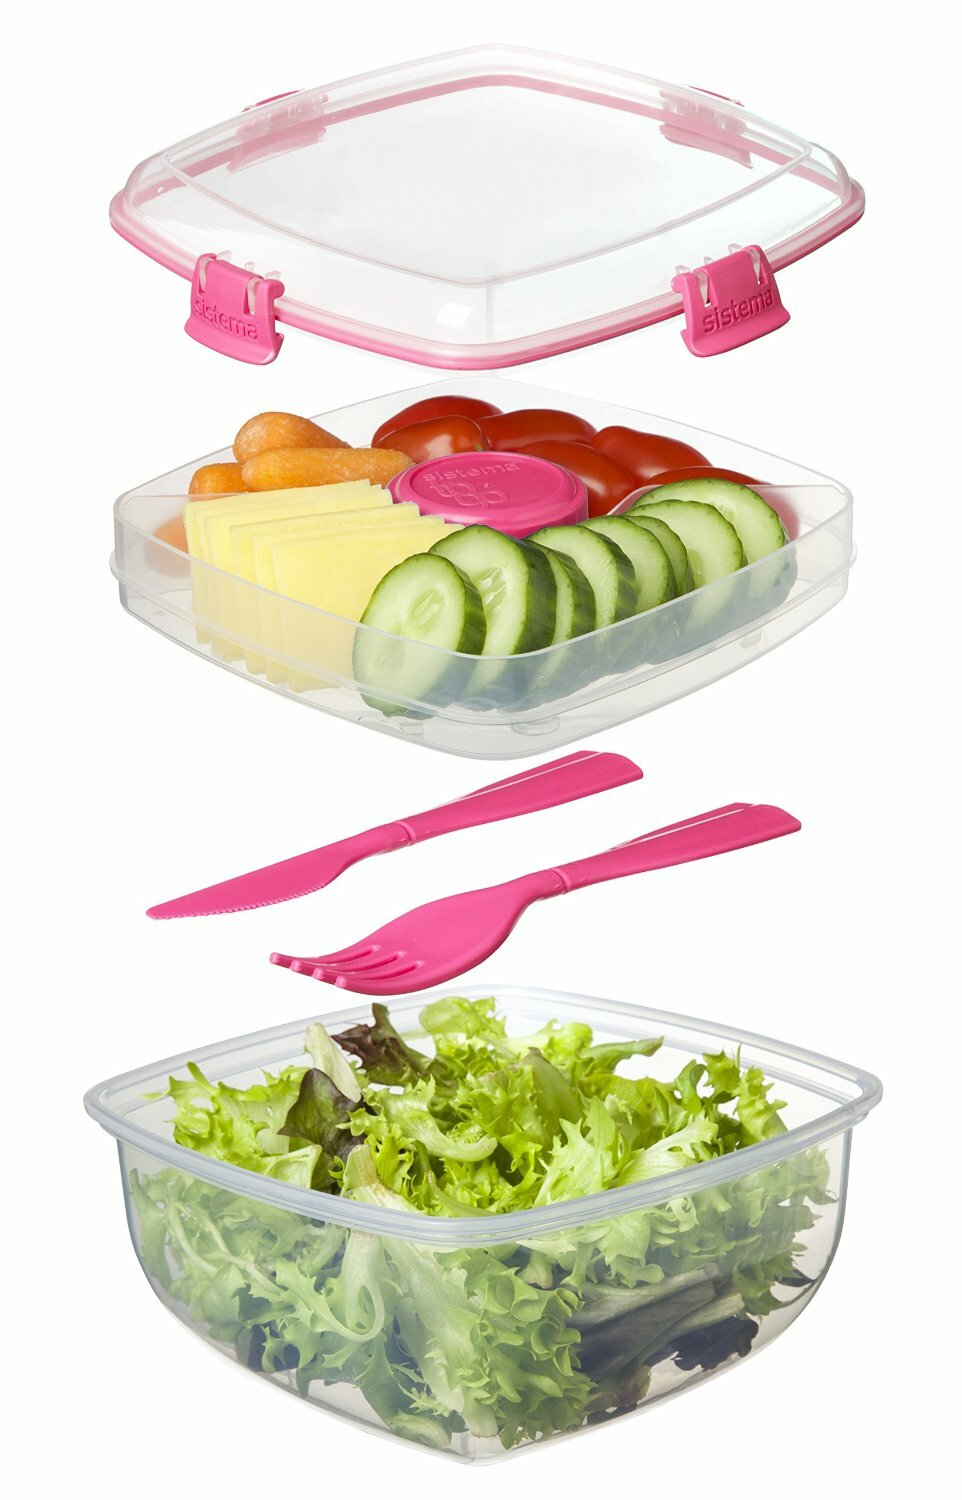 Sistema Salad To Go 372 oz Food Storage Container Wayfair